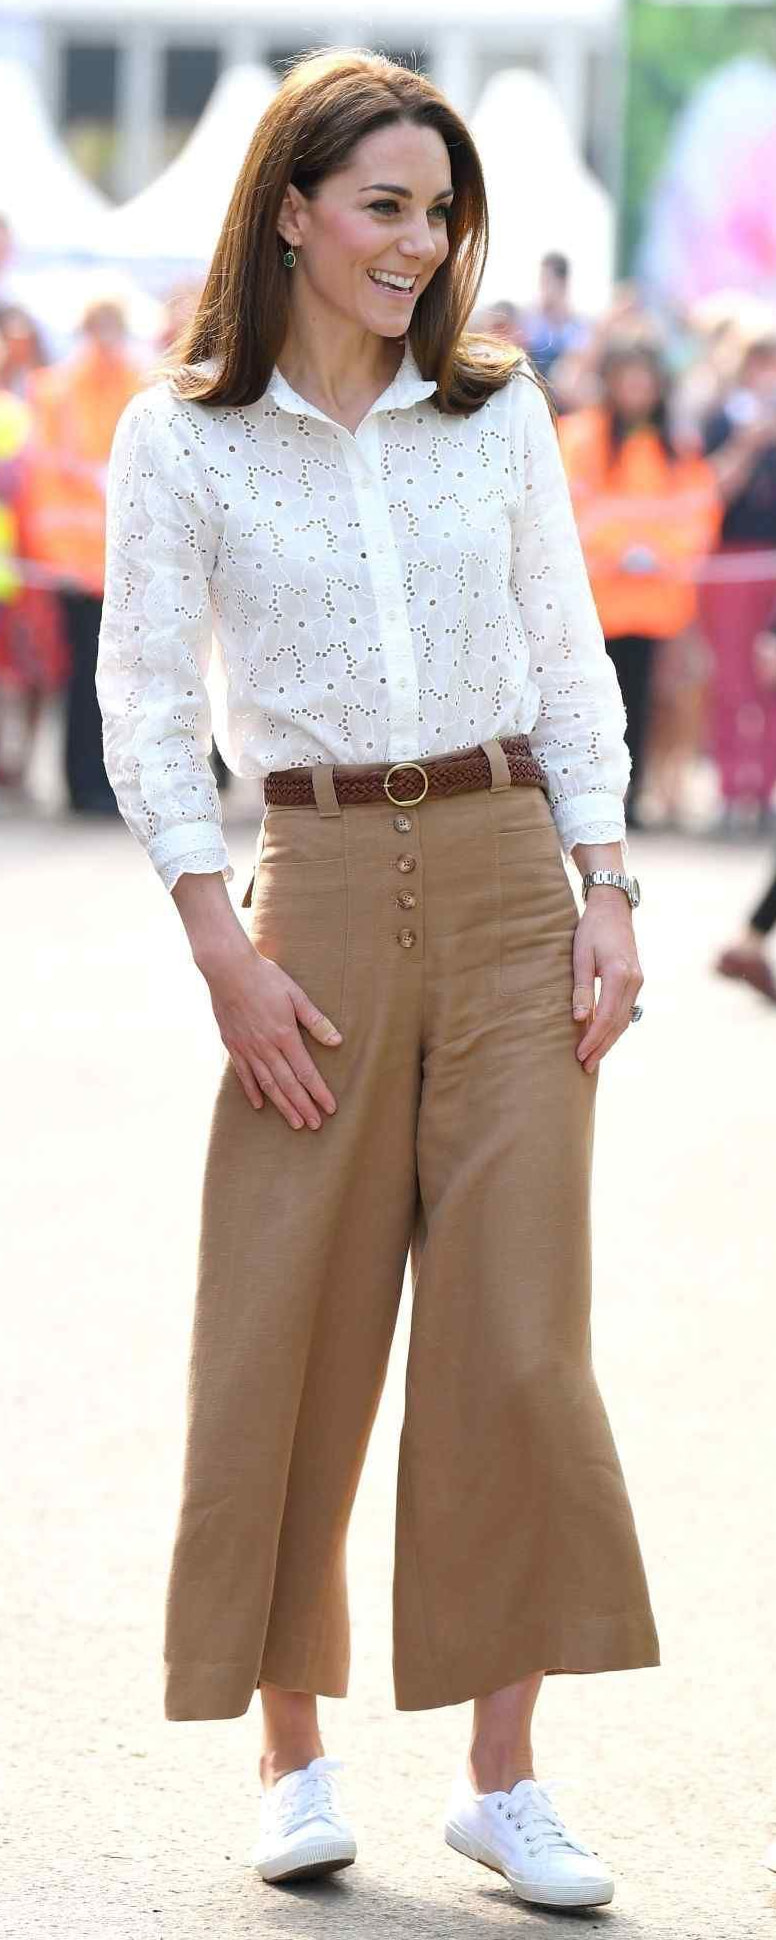 Massimo Dutti Buttoned Culottes as seen on Kate Middleton, The Duchess of Cambridge.